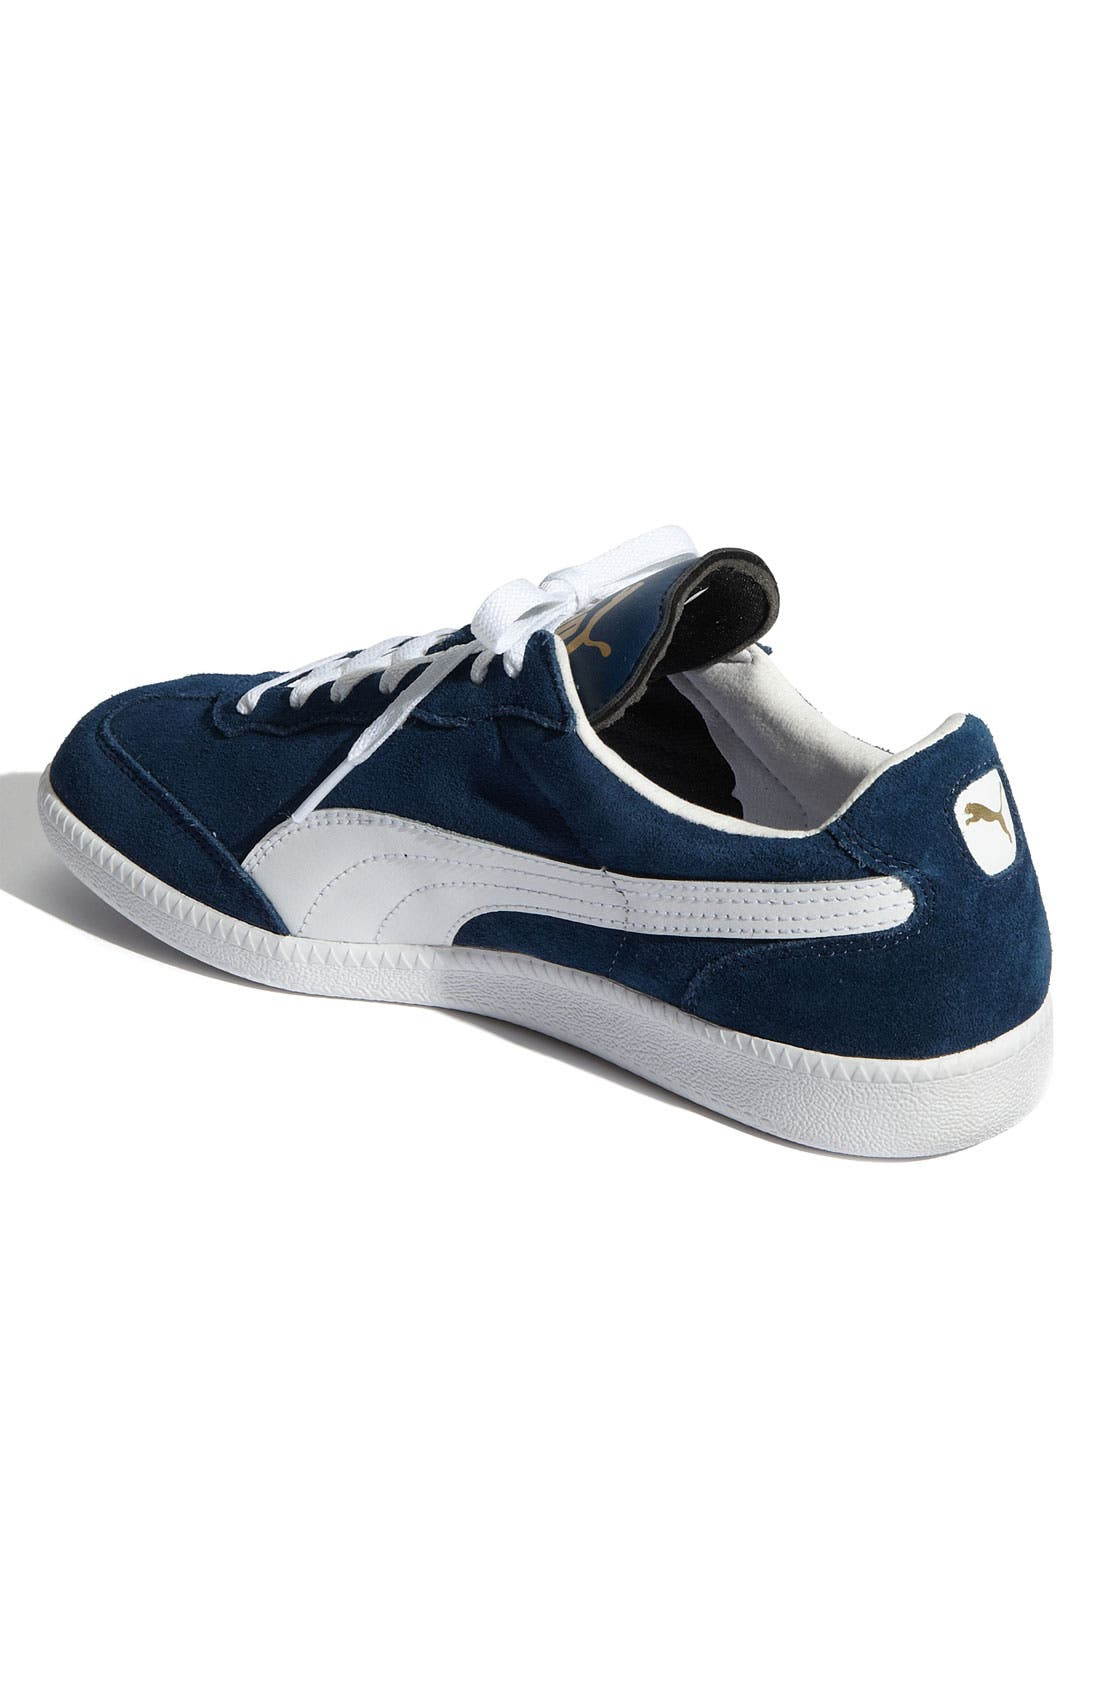 Alternate Image 2  - Puma 'Liga Suede II' Sneaker (Online Exclusive)